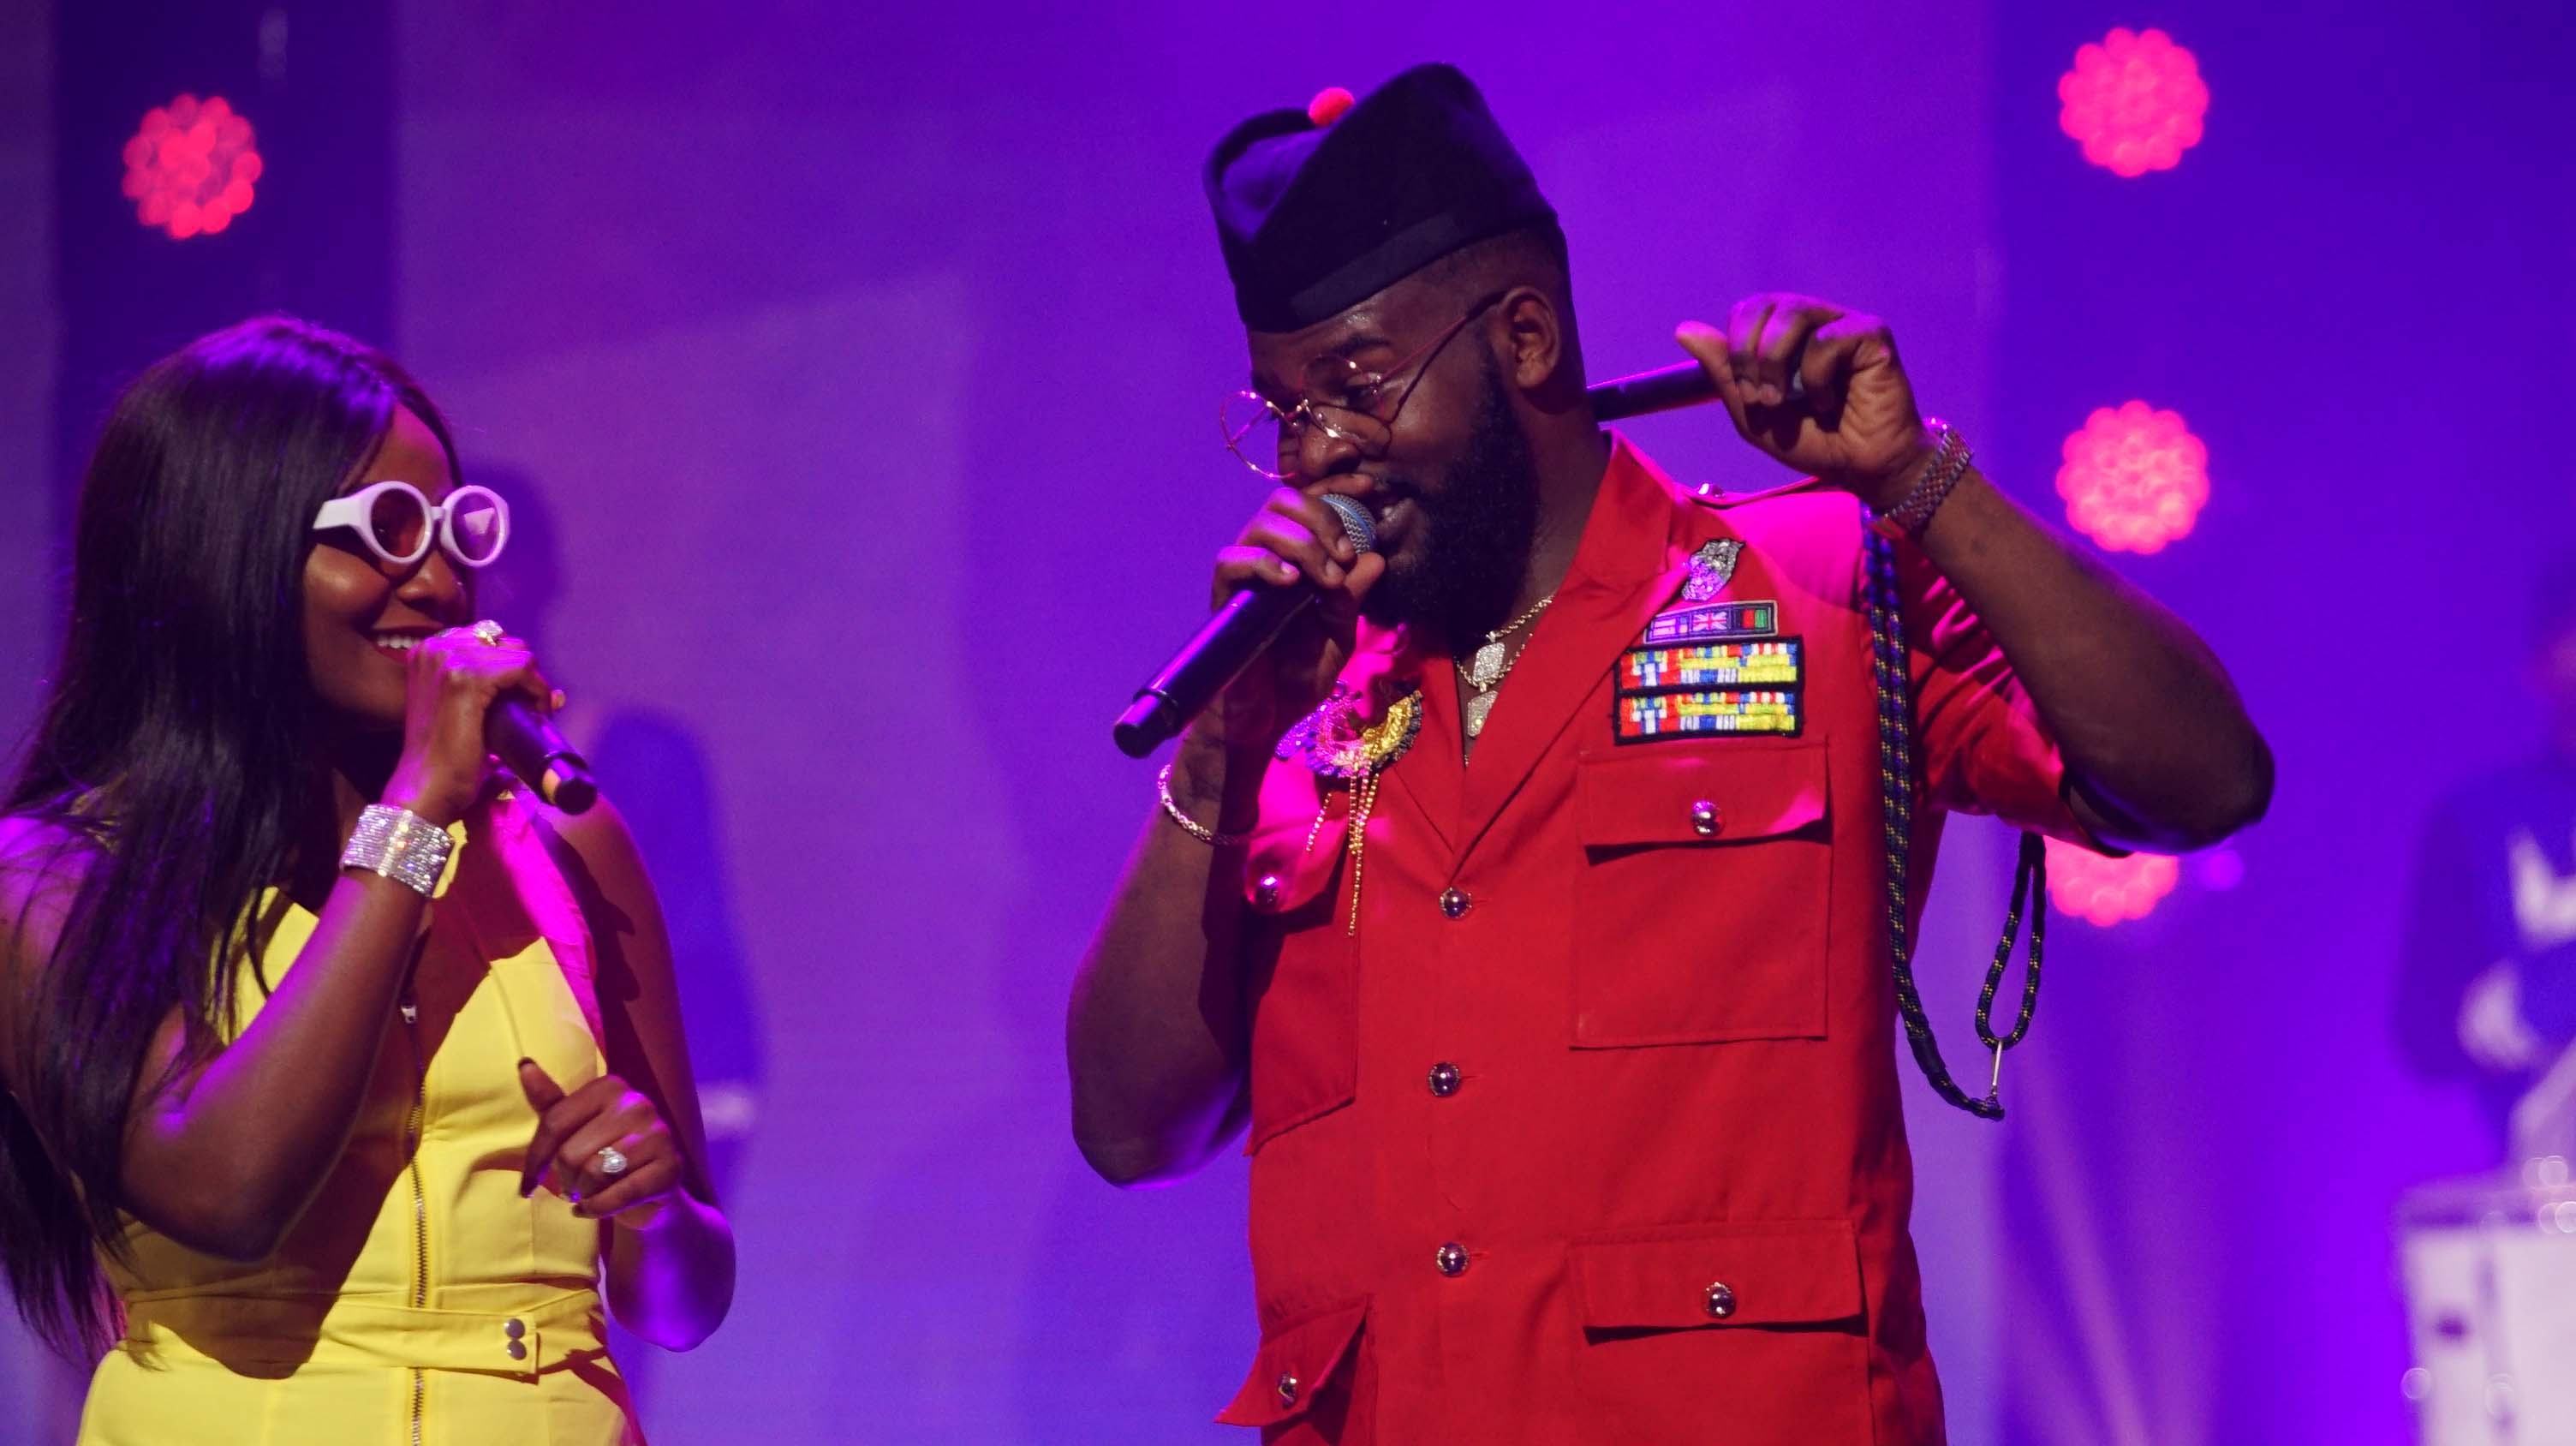 First Photos: Basketmouth, IK Osakioduwa, Funke Akindele, Timini Egbuson, Simi, Adekunle Gold, Tobi Bakre, Niniola And Others Attend The Falz Experience 2